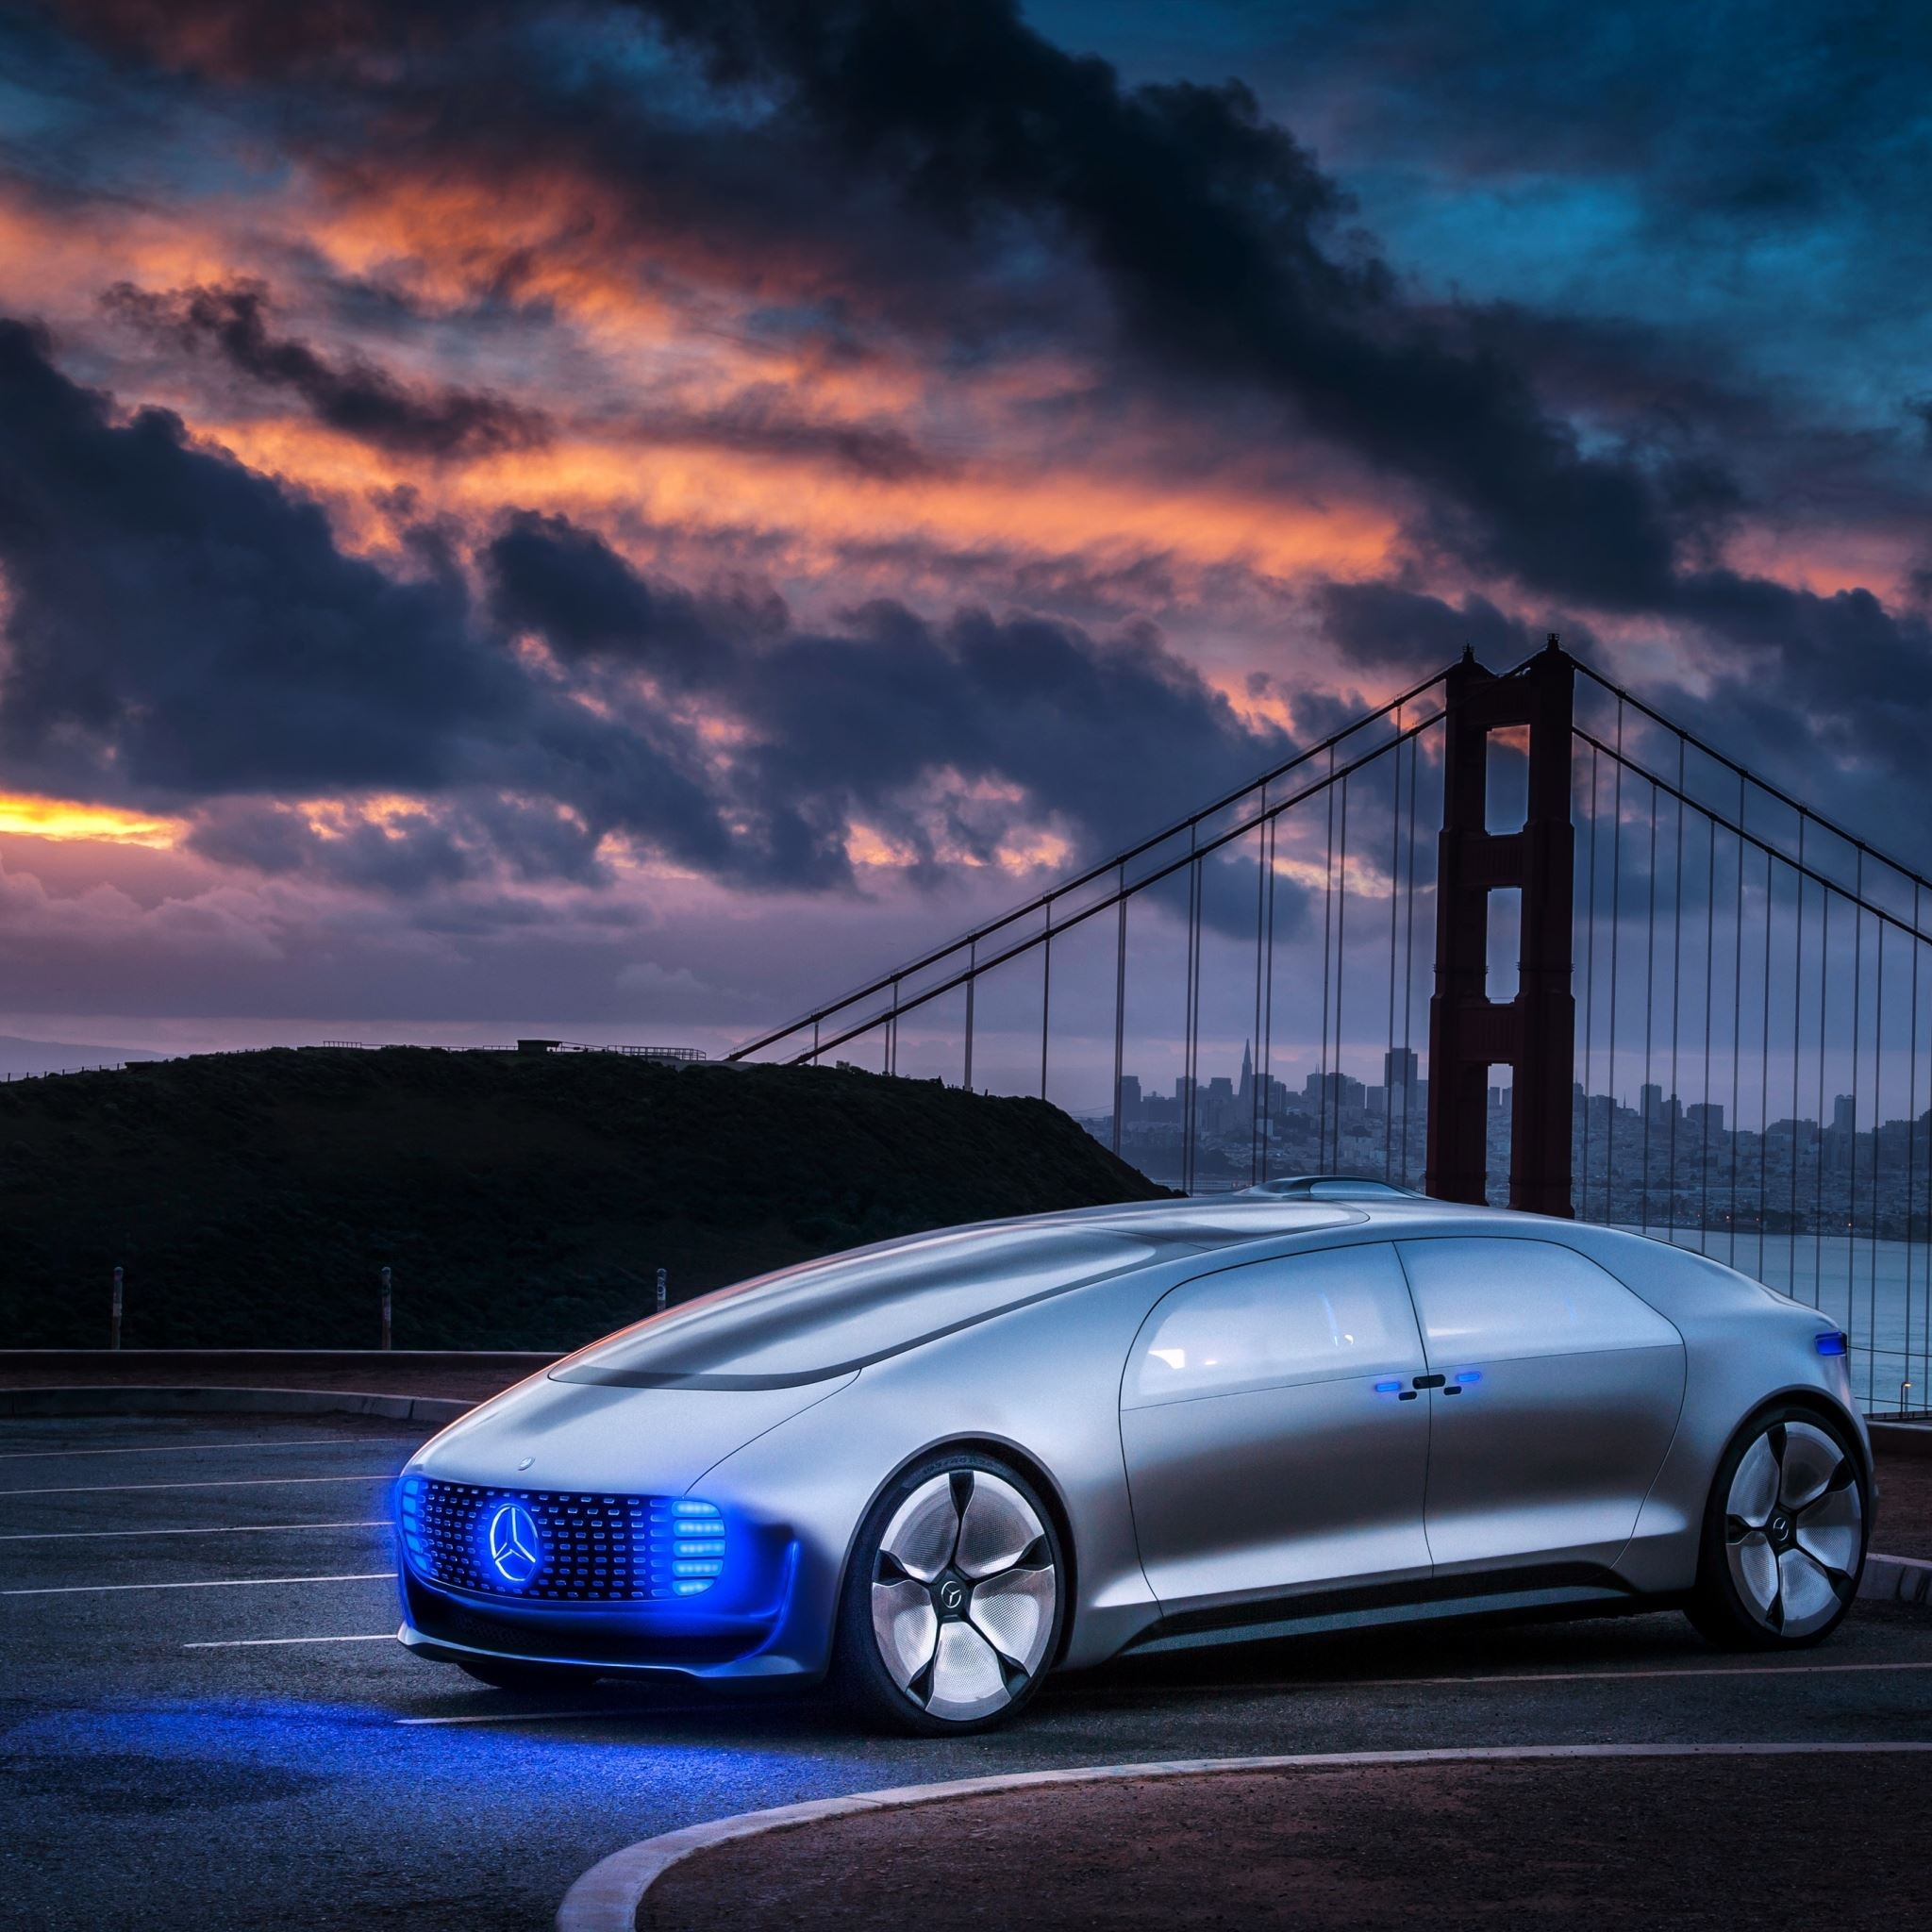 Mercedes Benz F015 Side View Ipad Pro Wallpapers